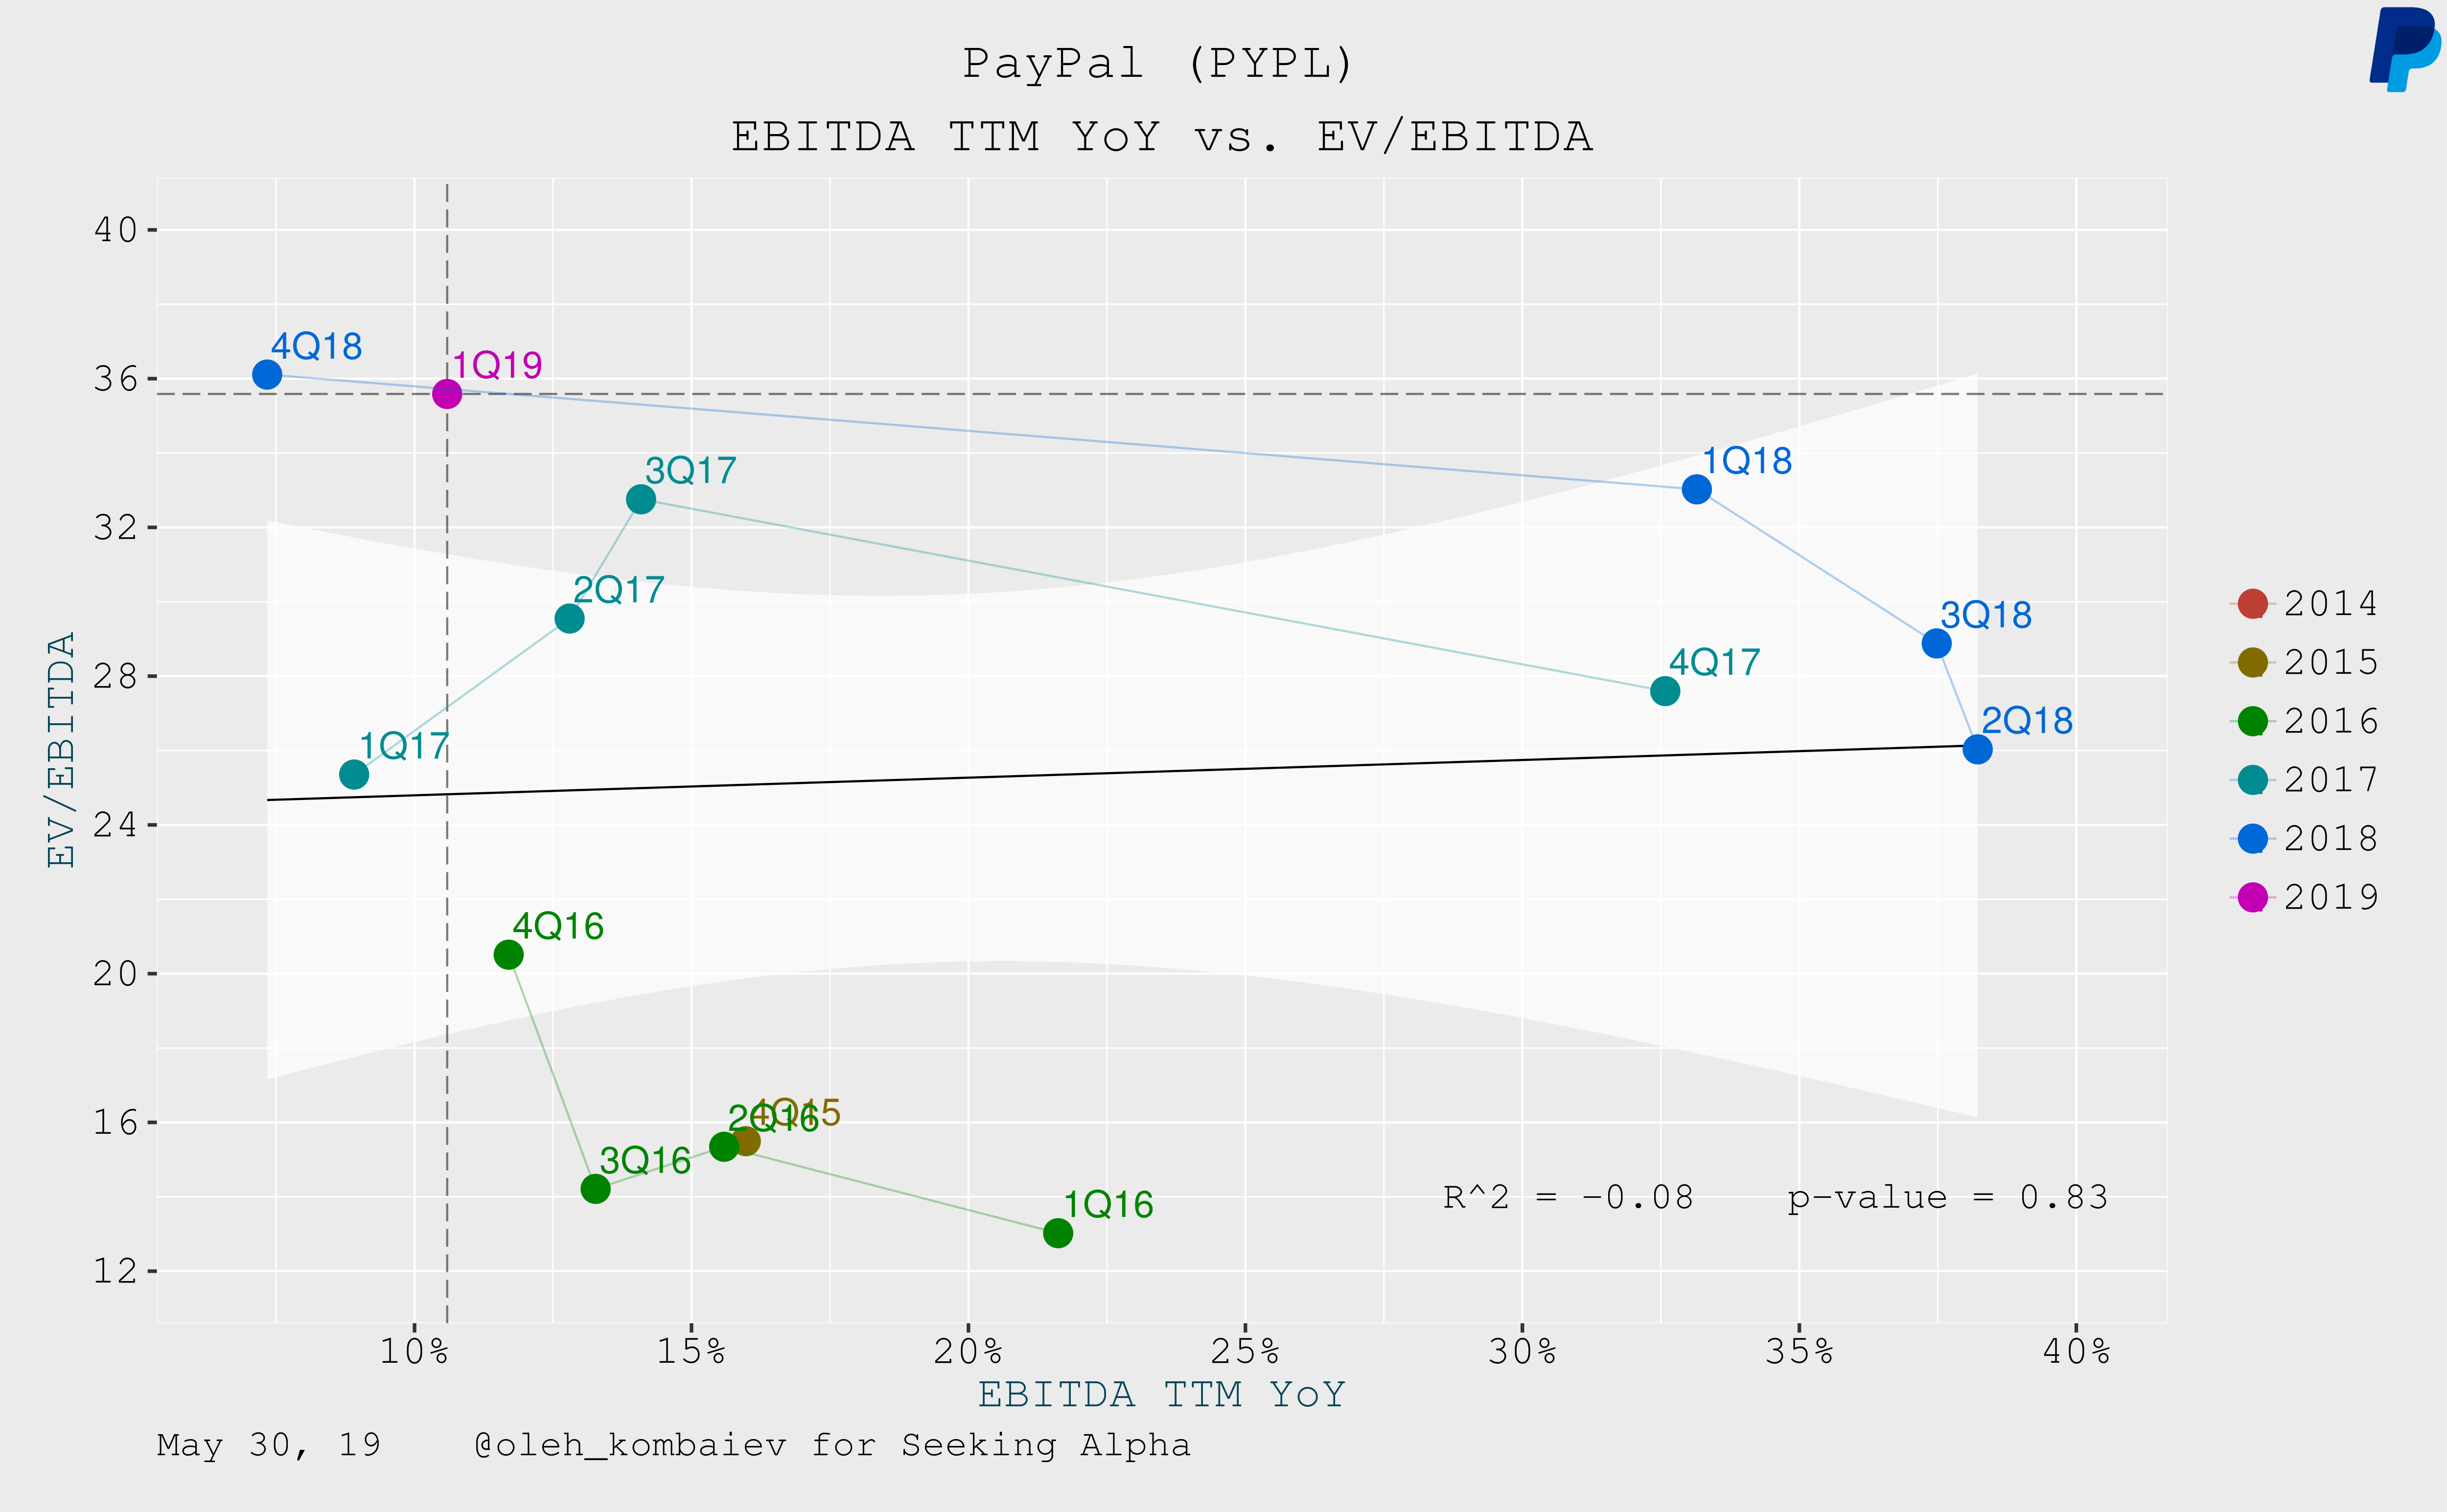 Strong Evidence That PayPal Is Overvalued - PayPal Holdings